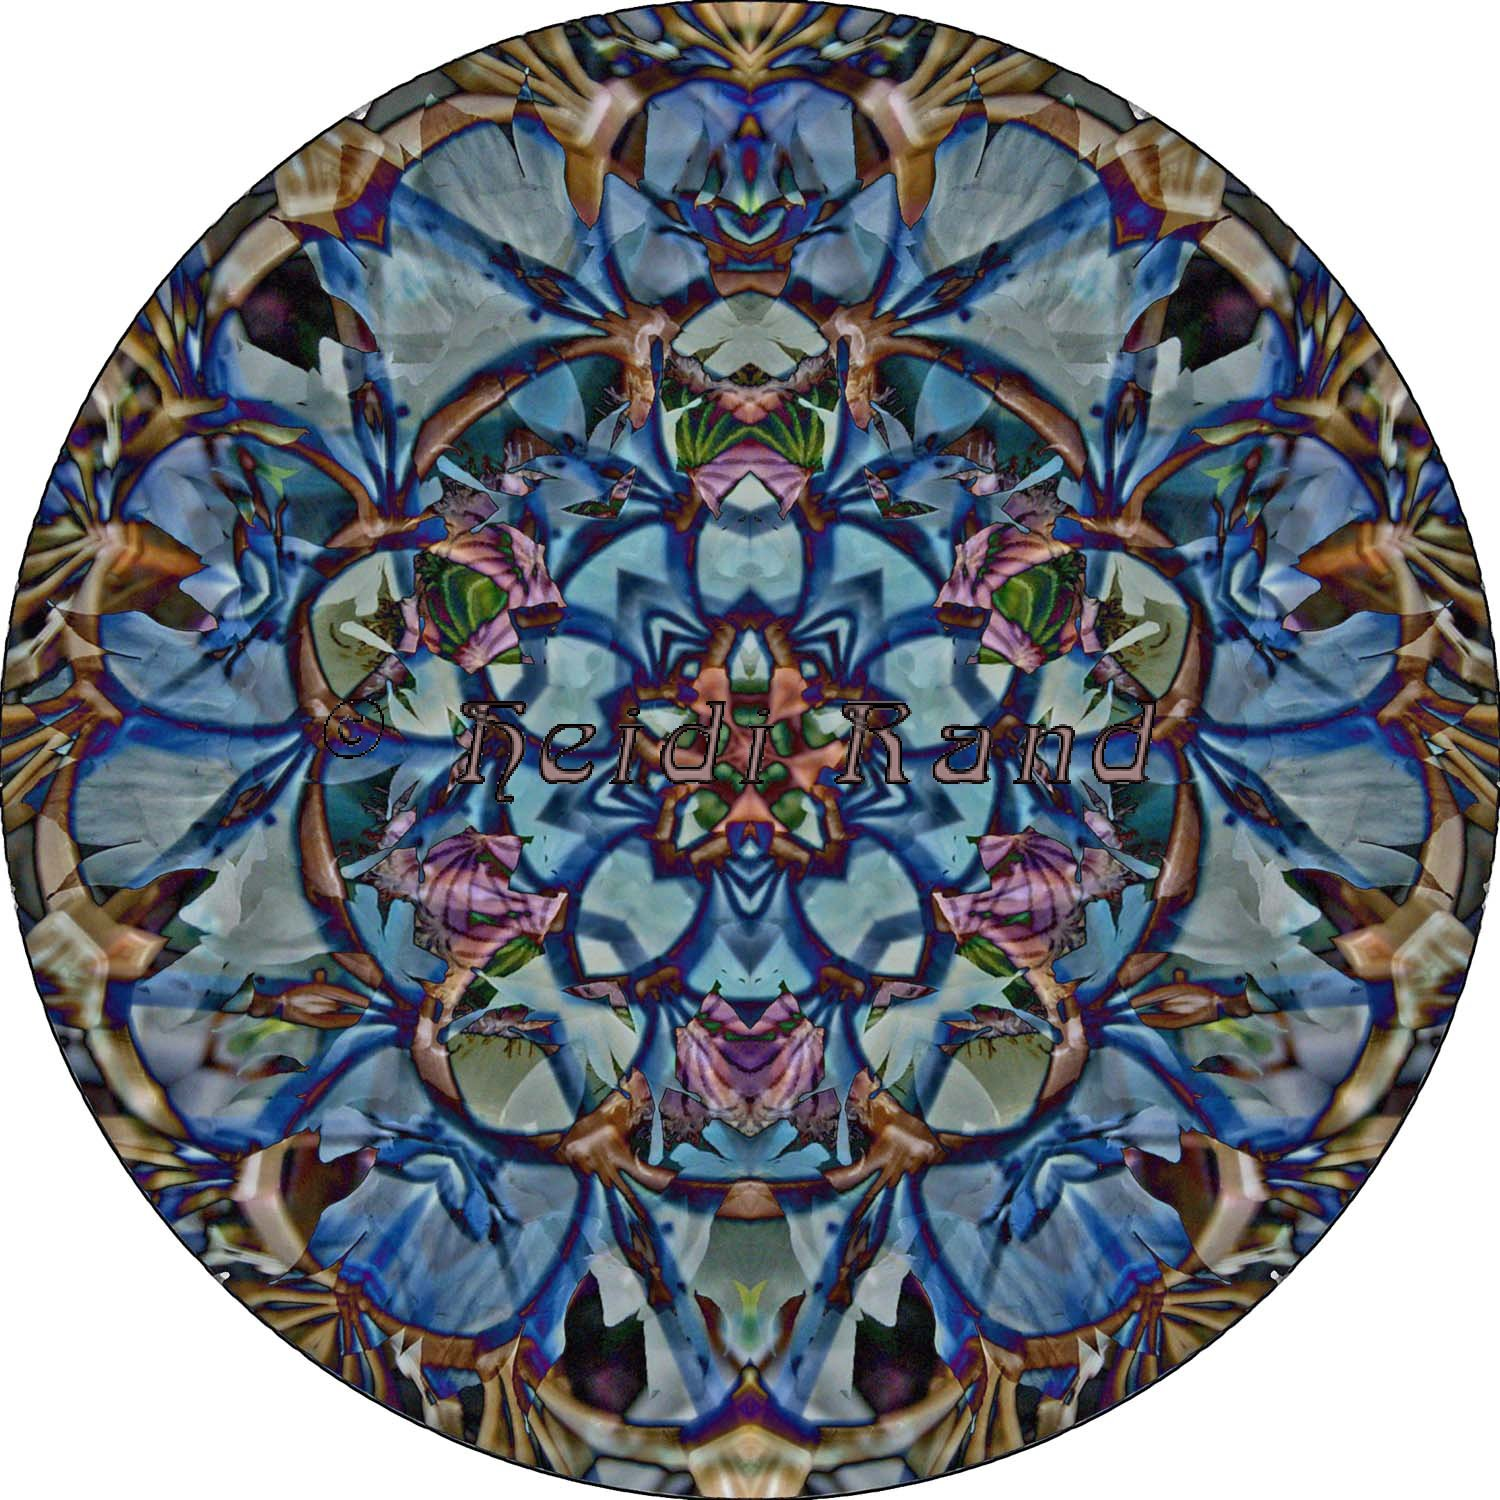 White poppy elevator collage mandala